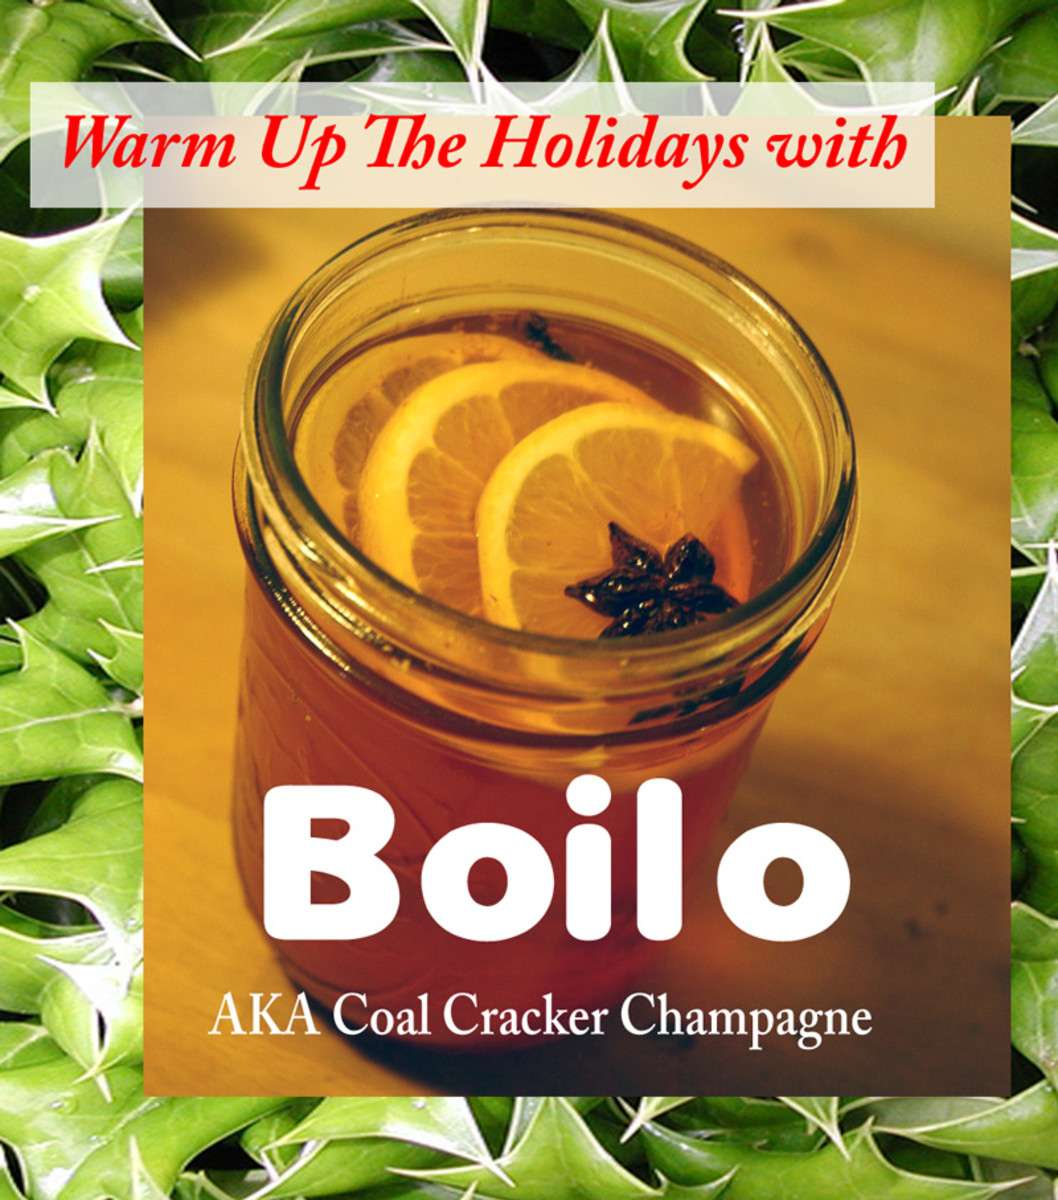 How to Make a Batch of Boilo - A Pennsylvania Holiday Beverage